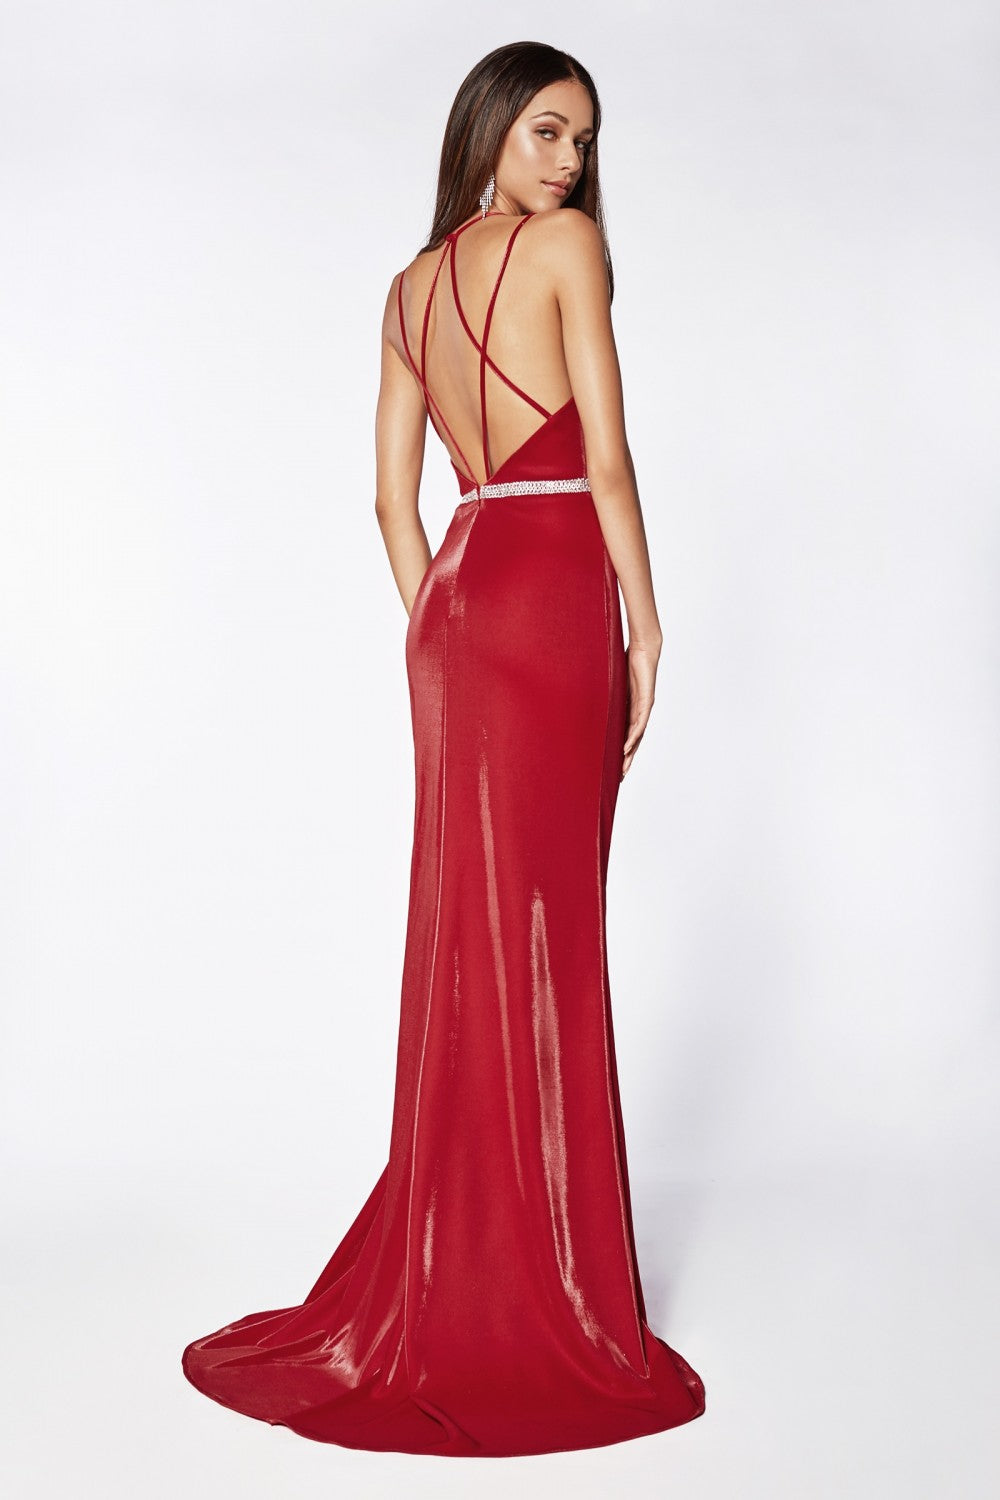 Fitted Deep Plunging Neckline Gown With Beaded Belt And Leg Slit